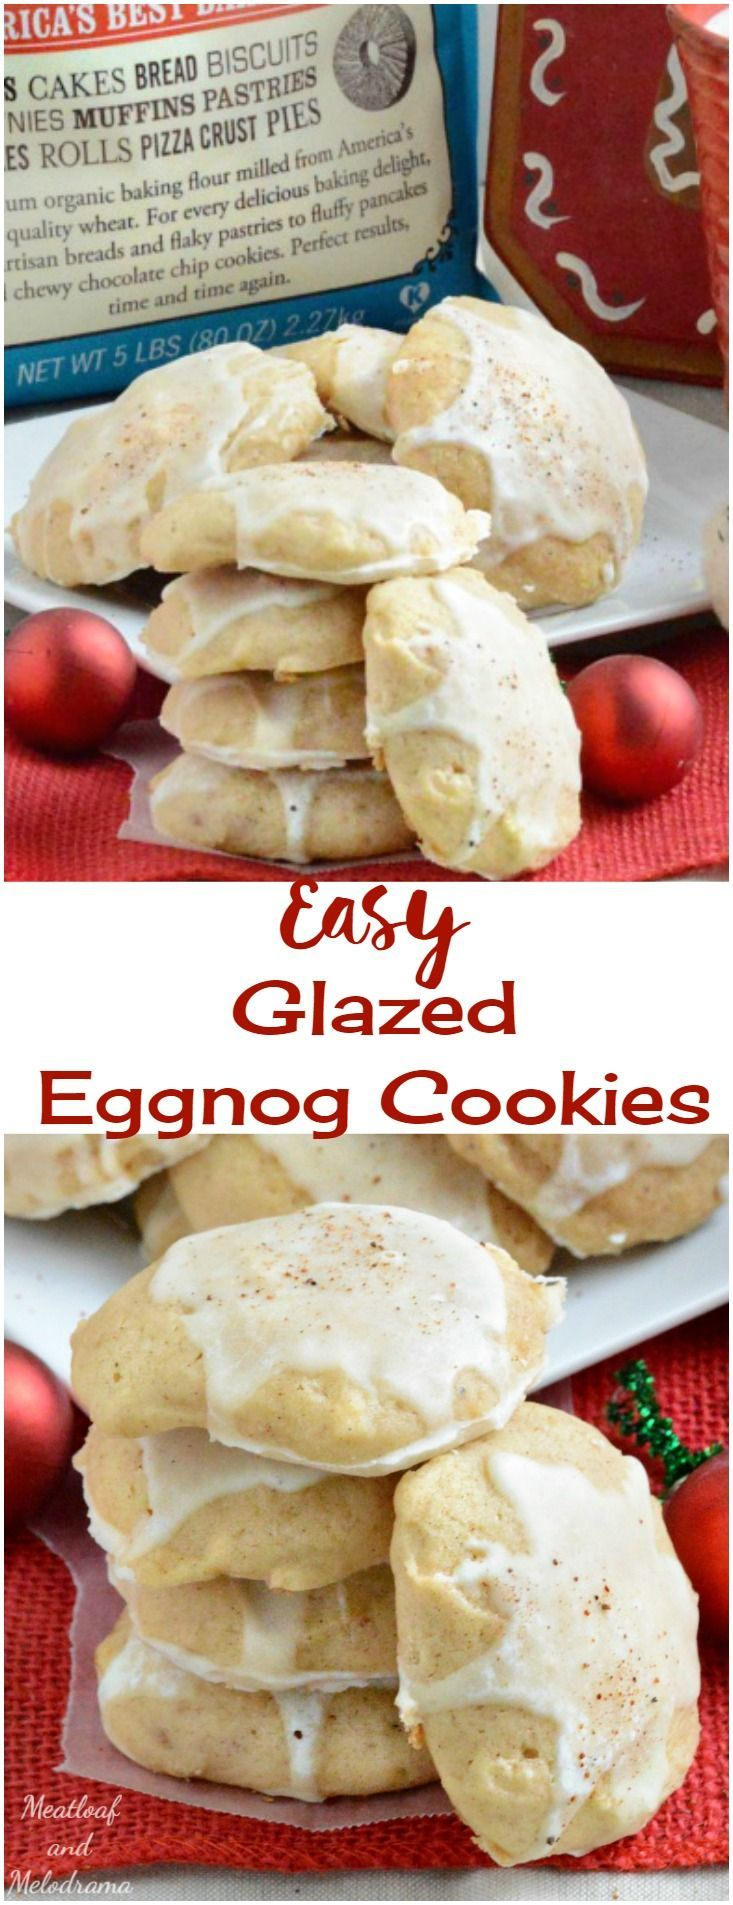 Easy Glazed Eggnog Cookies - Soft, chewy, fluffy cookies to add to your holiday baking list. Perfect for Christmas or any winter holiday. AD #BobsHolidayCheer @Bob's Red Mill